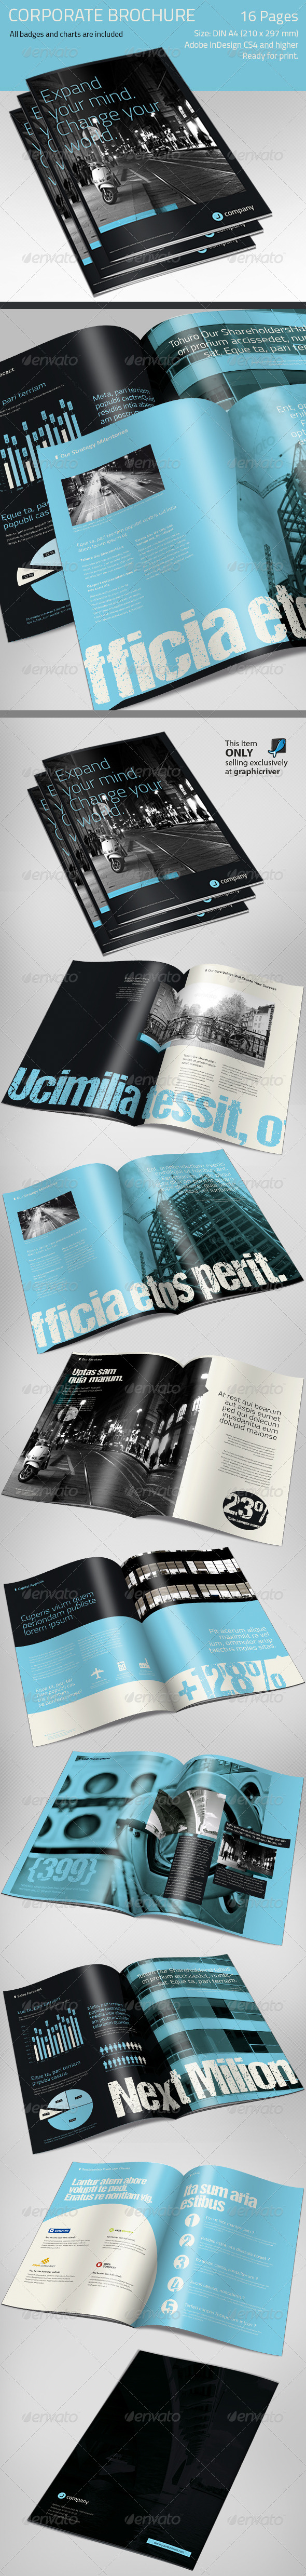 GraphicRiver Corporate Brochure Vol 4 7315037